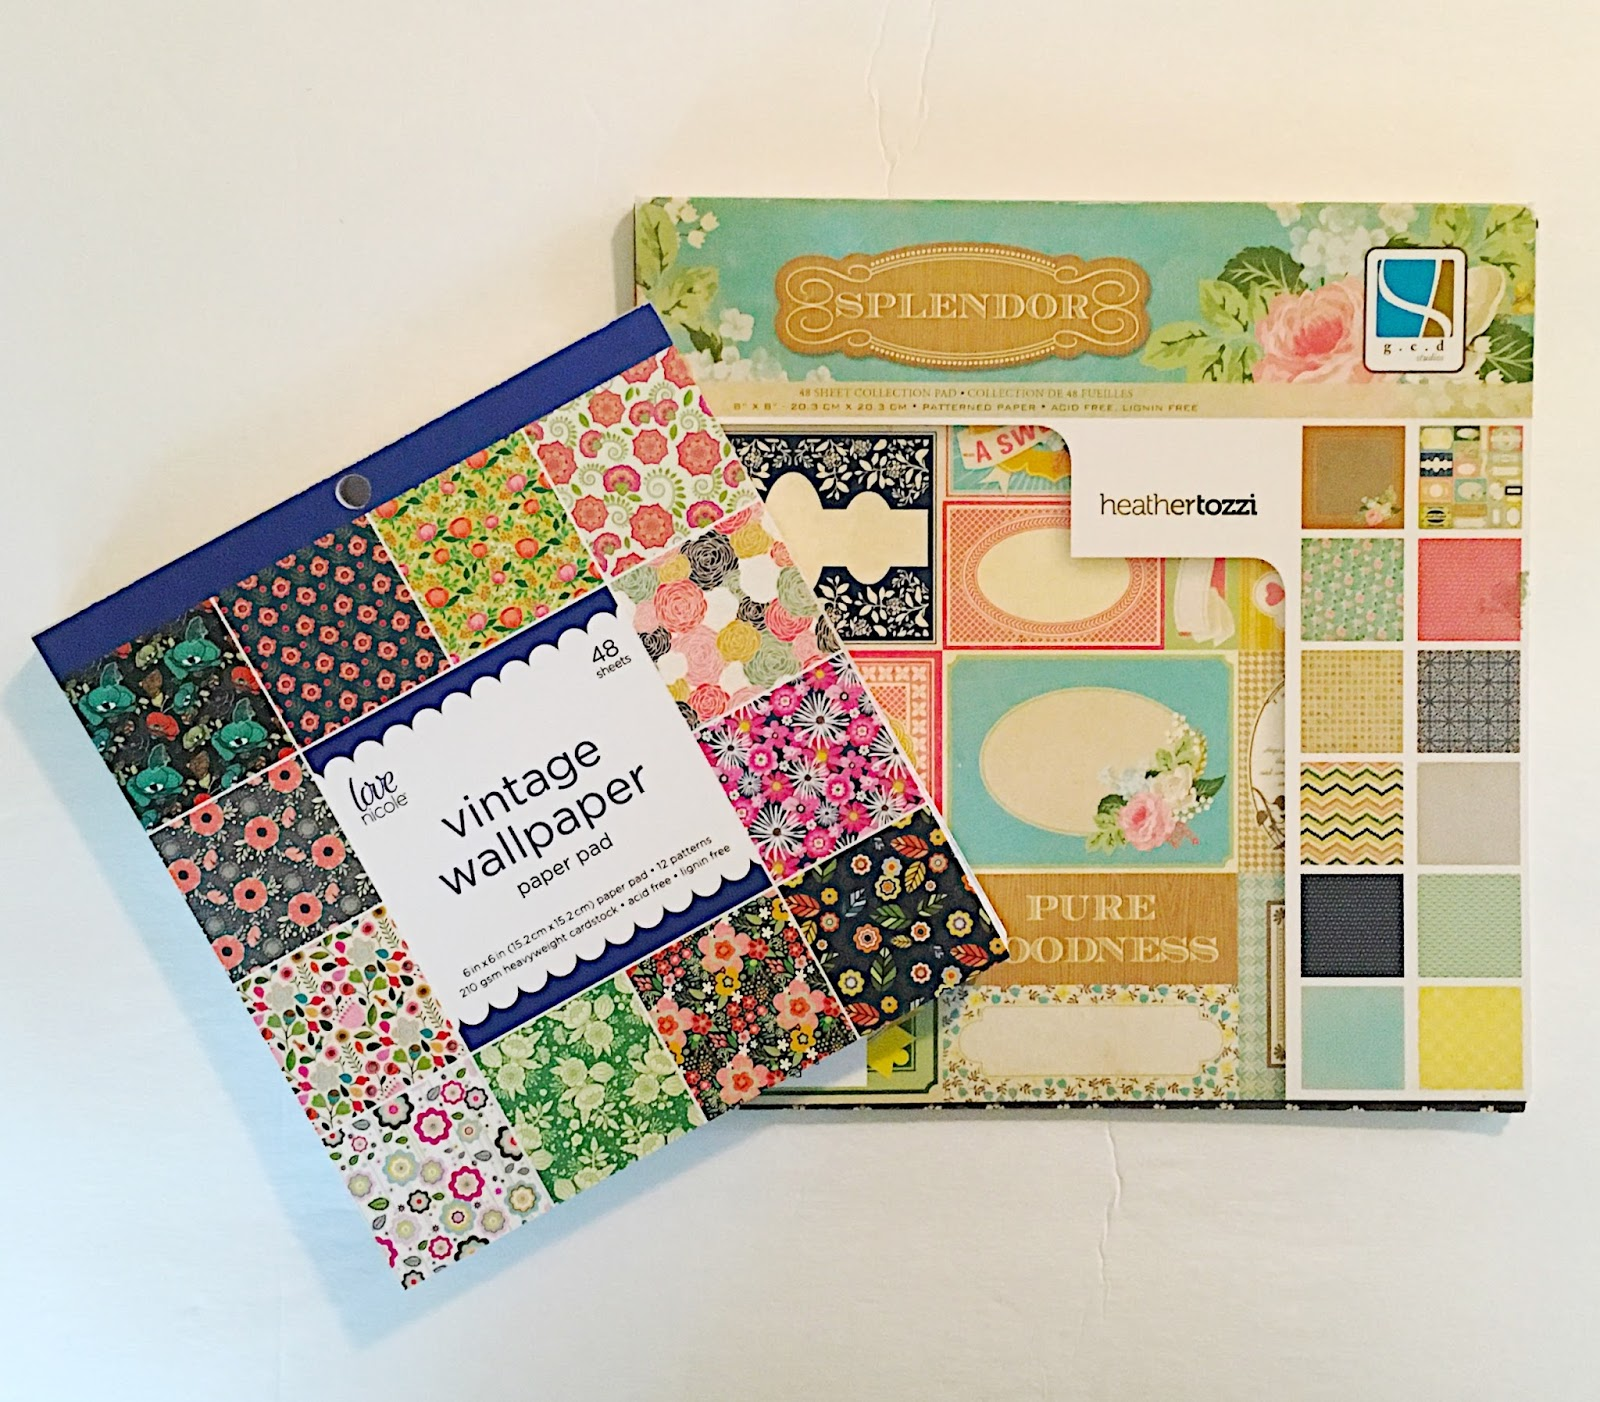 Scrapbook paper envelope template - I Used A Roll Ofkraft Paper Which I Purchased At Walmart I Like To Line My Envelopes I Used A Pad Of Scrapbooking Paper That Was 8x8 But The 6x6 Would